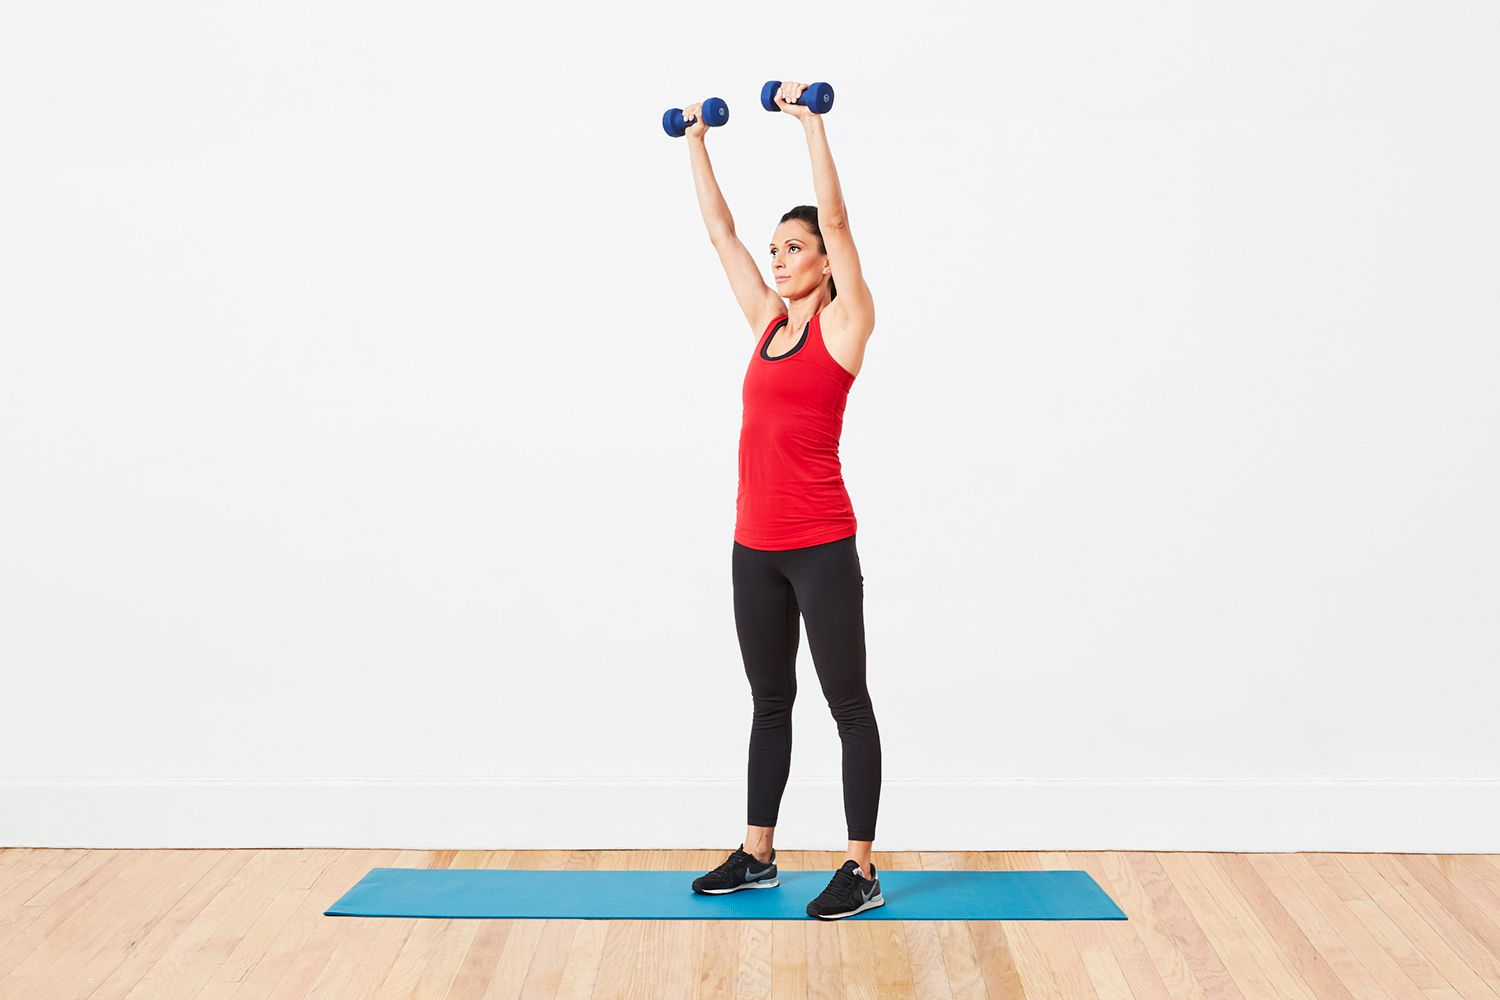 Total Body Home Workout With Dumbbells